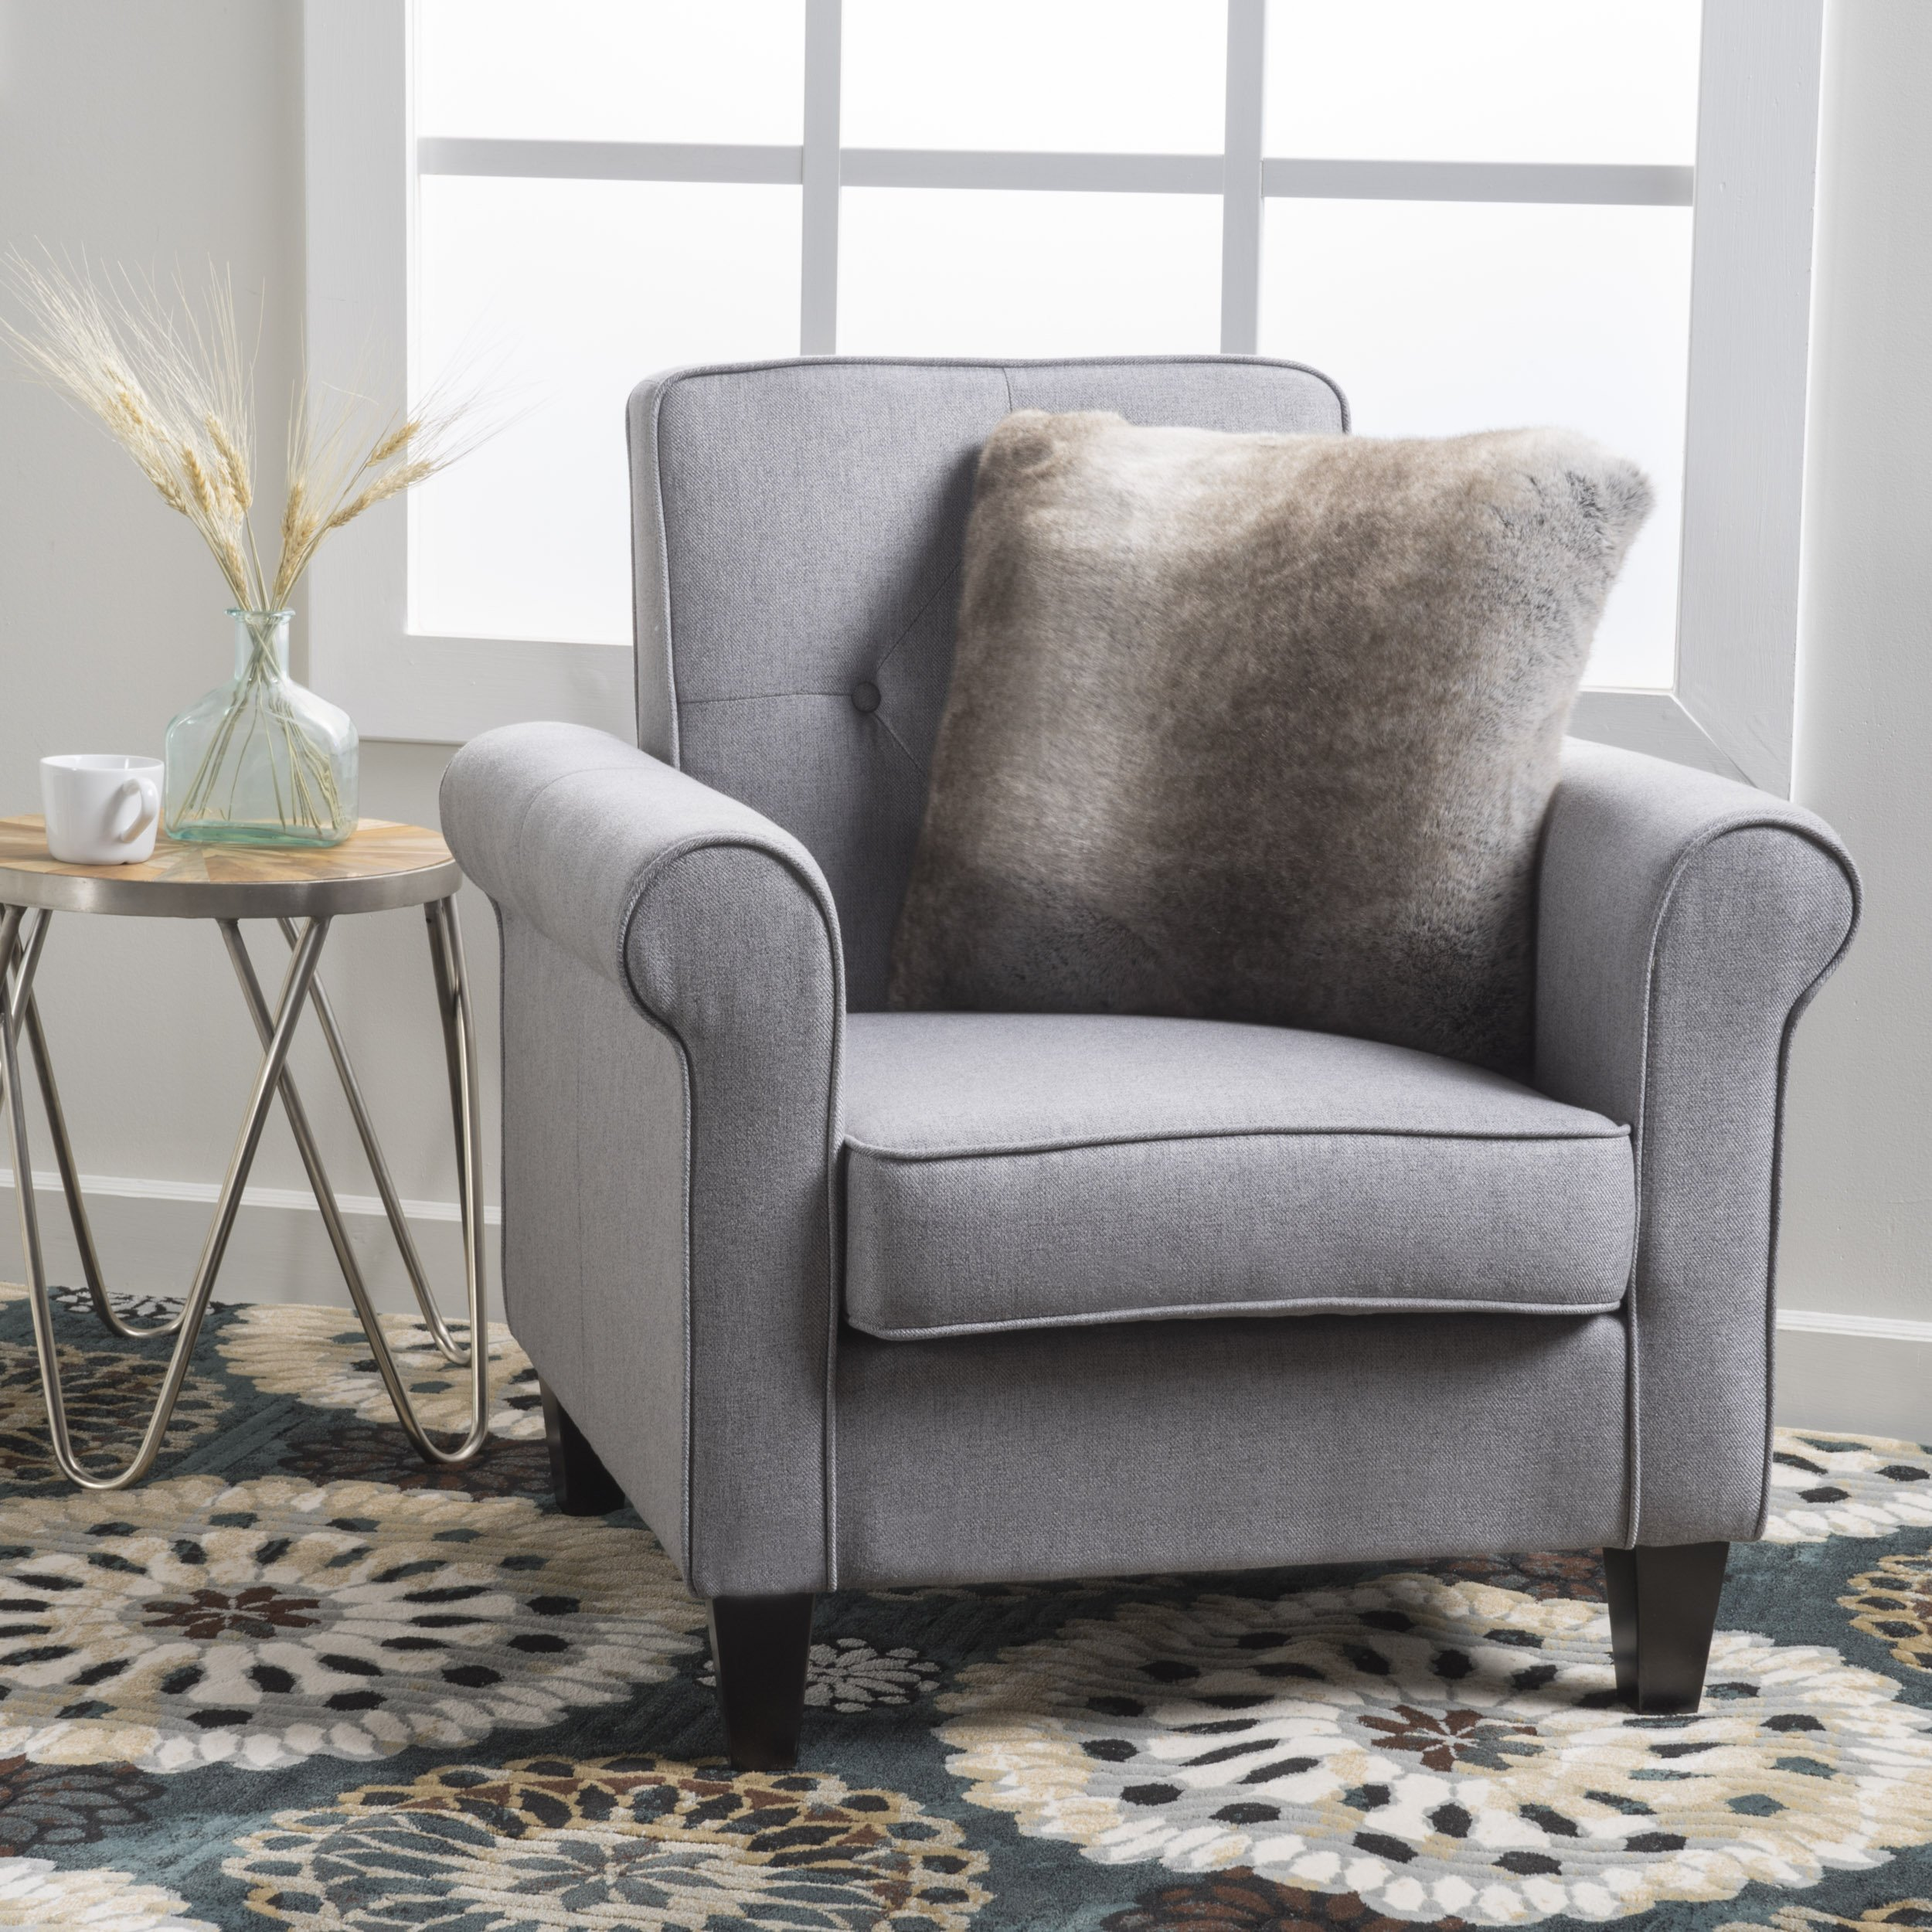 Comfortable Small Living Room Luxury 10 fortable Chairs for Small Spaces to Cozy Up Your Living Room